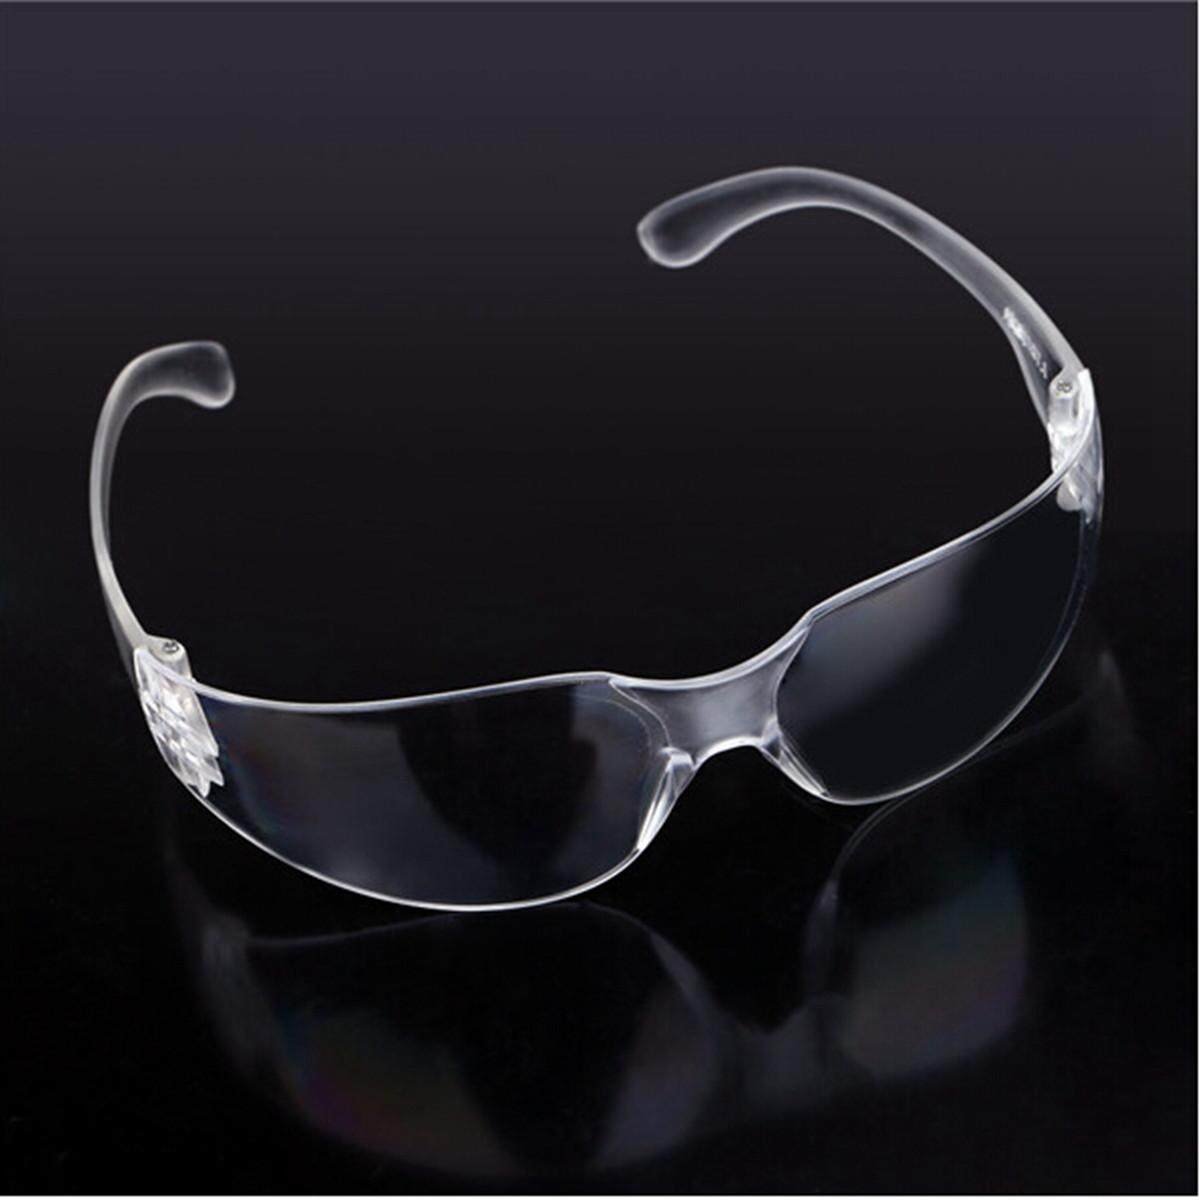 3cps Lucency Safety Eye Protection Goggles Glasses for Workplace Lab Industrial Dust